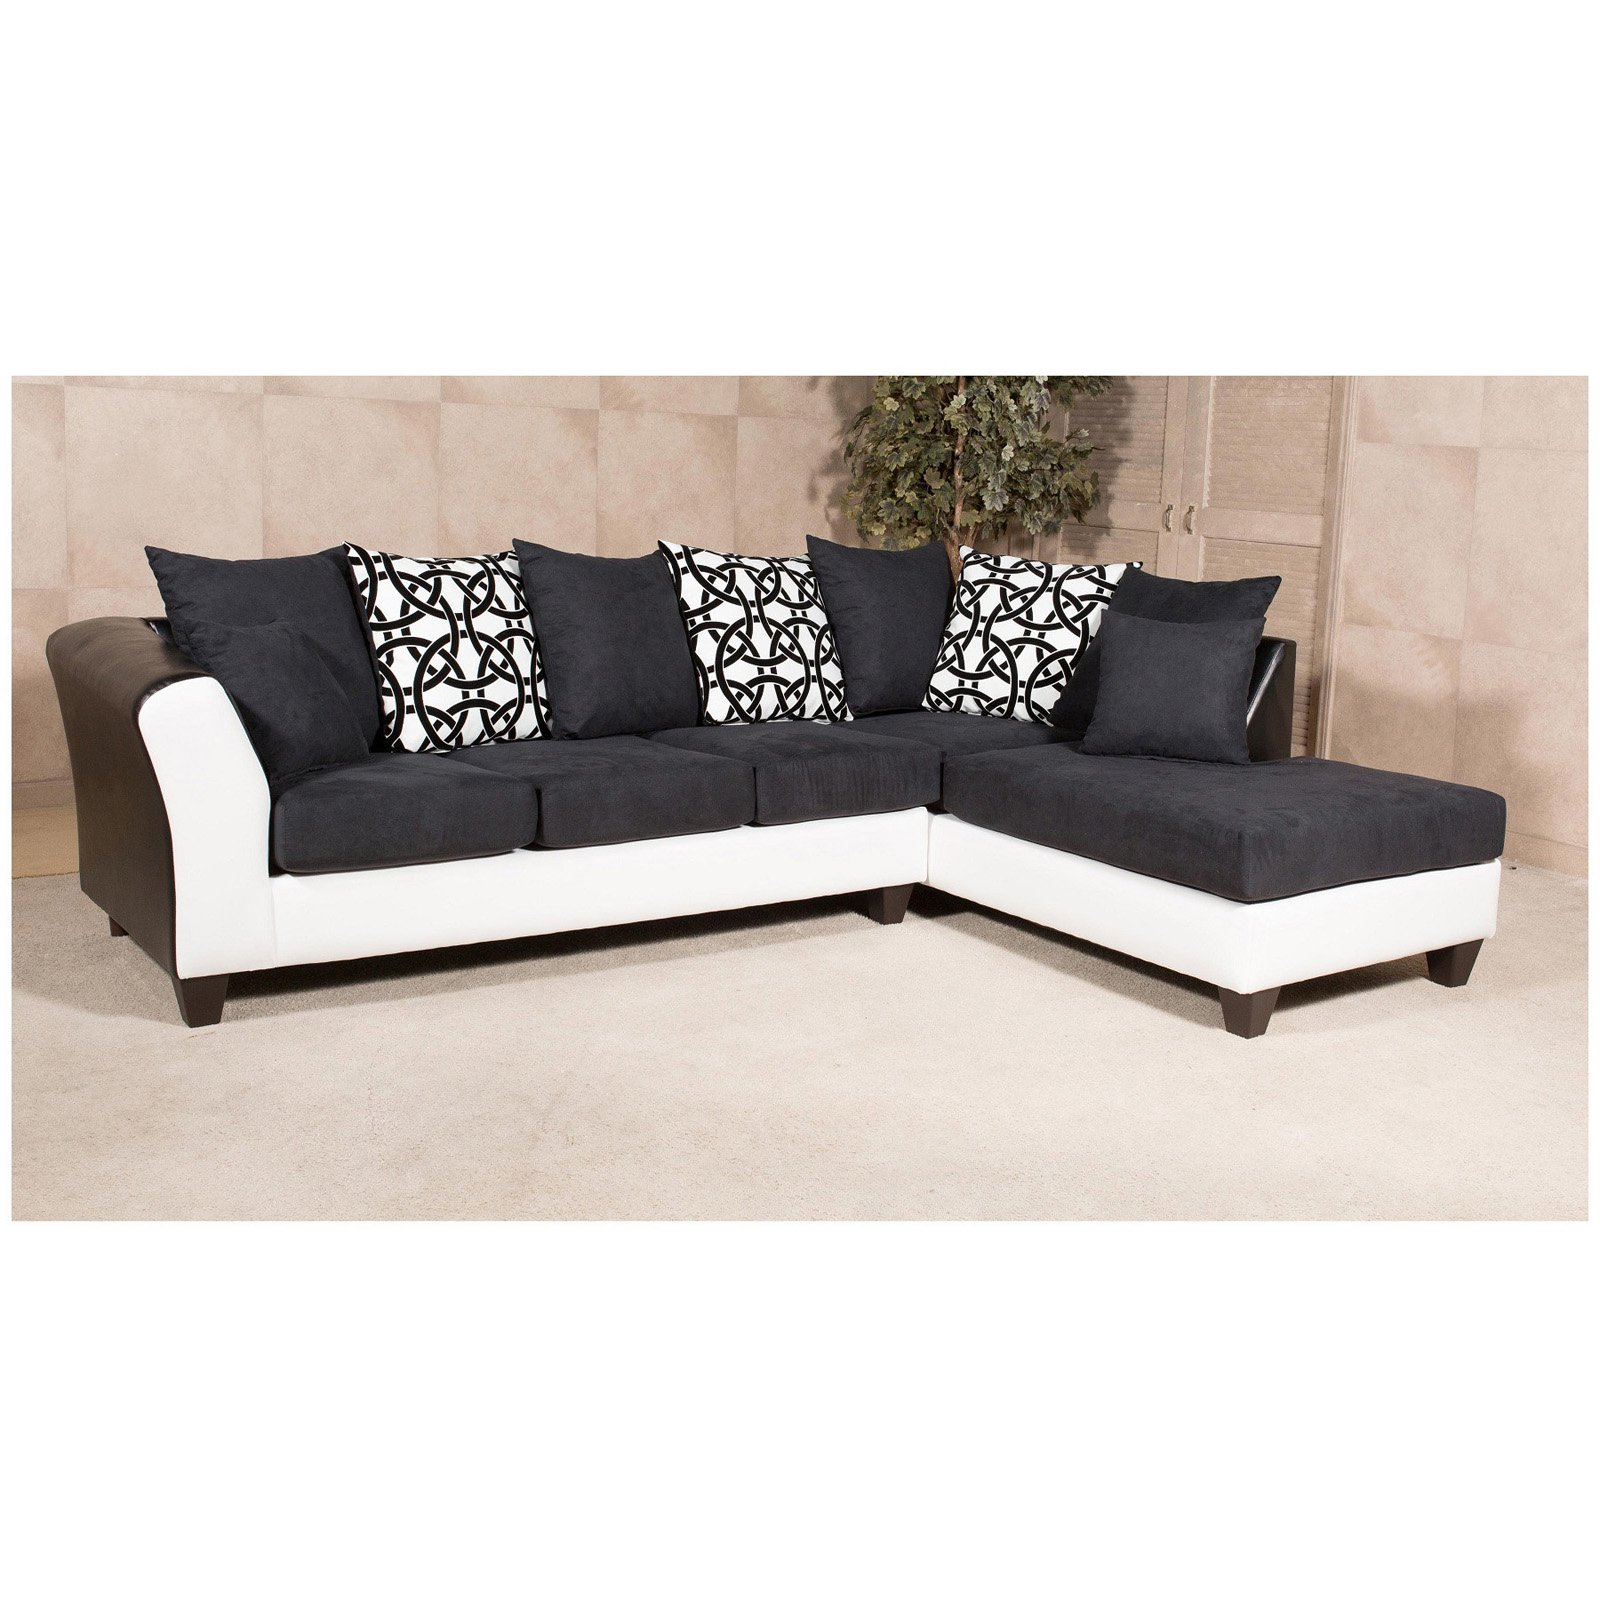 Chelsea Home Monterey 2 Piece Sectional Sofa with 7 Accent Pillows